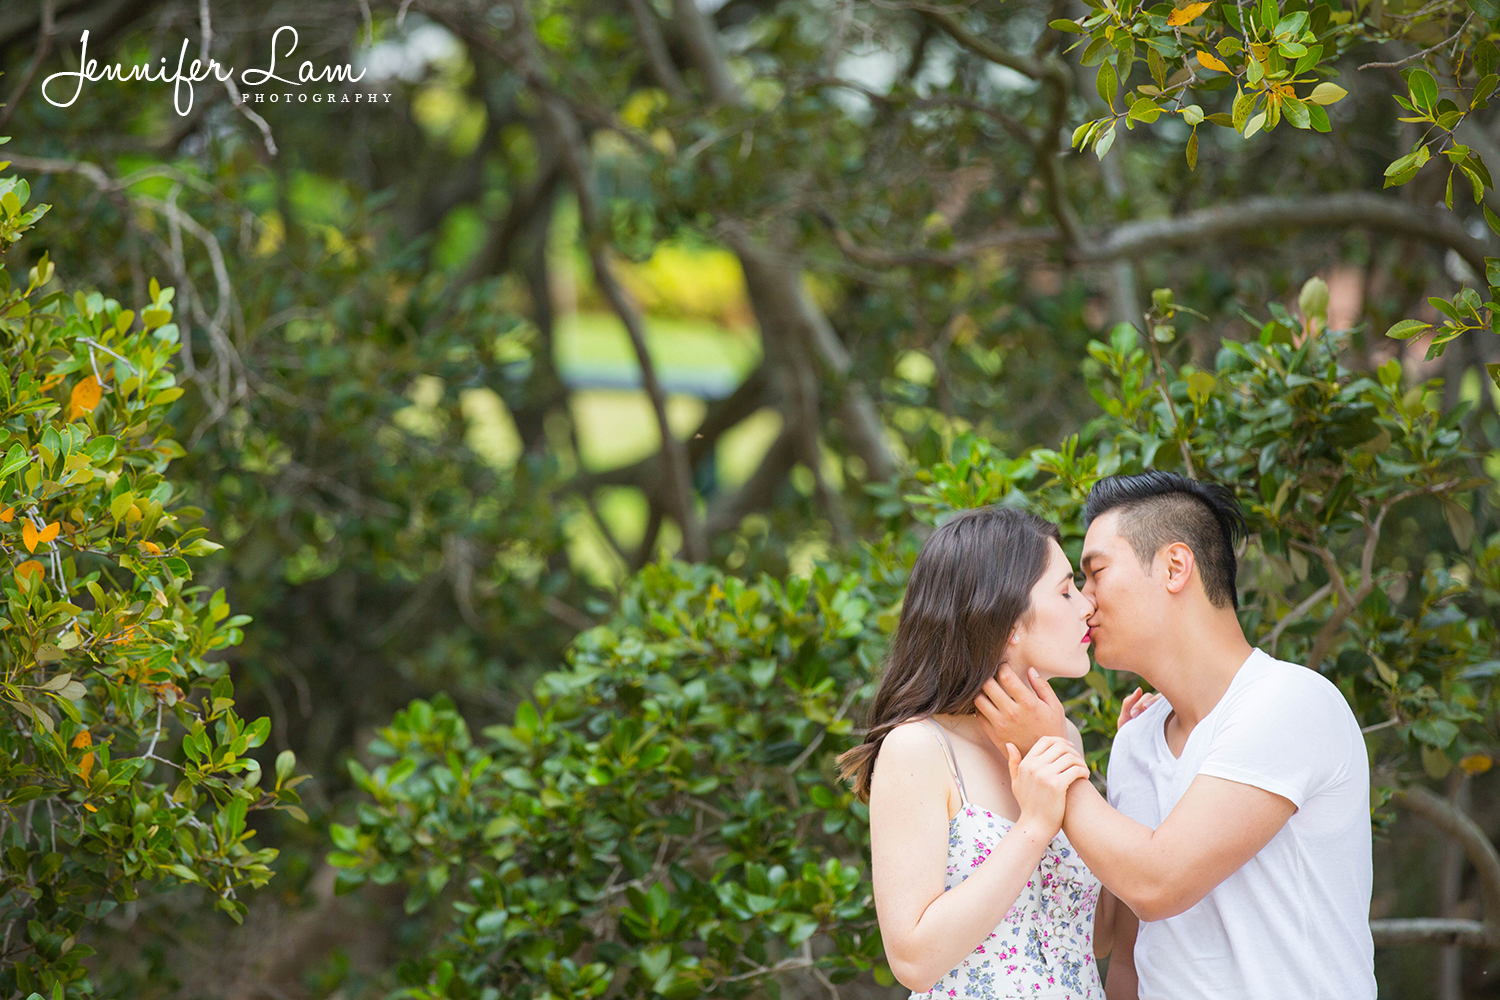 Sydney Pre-Wedding Photography - Jennifer Lam Photography (21).jpg